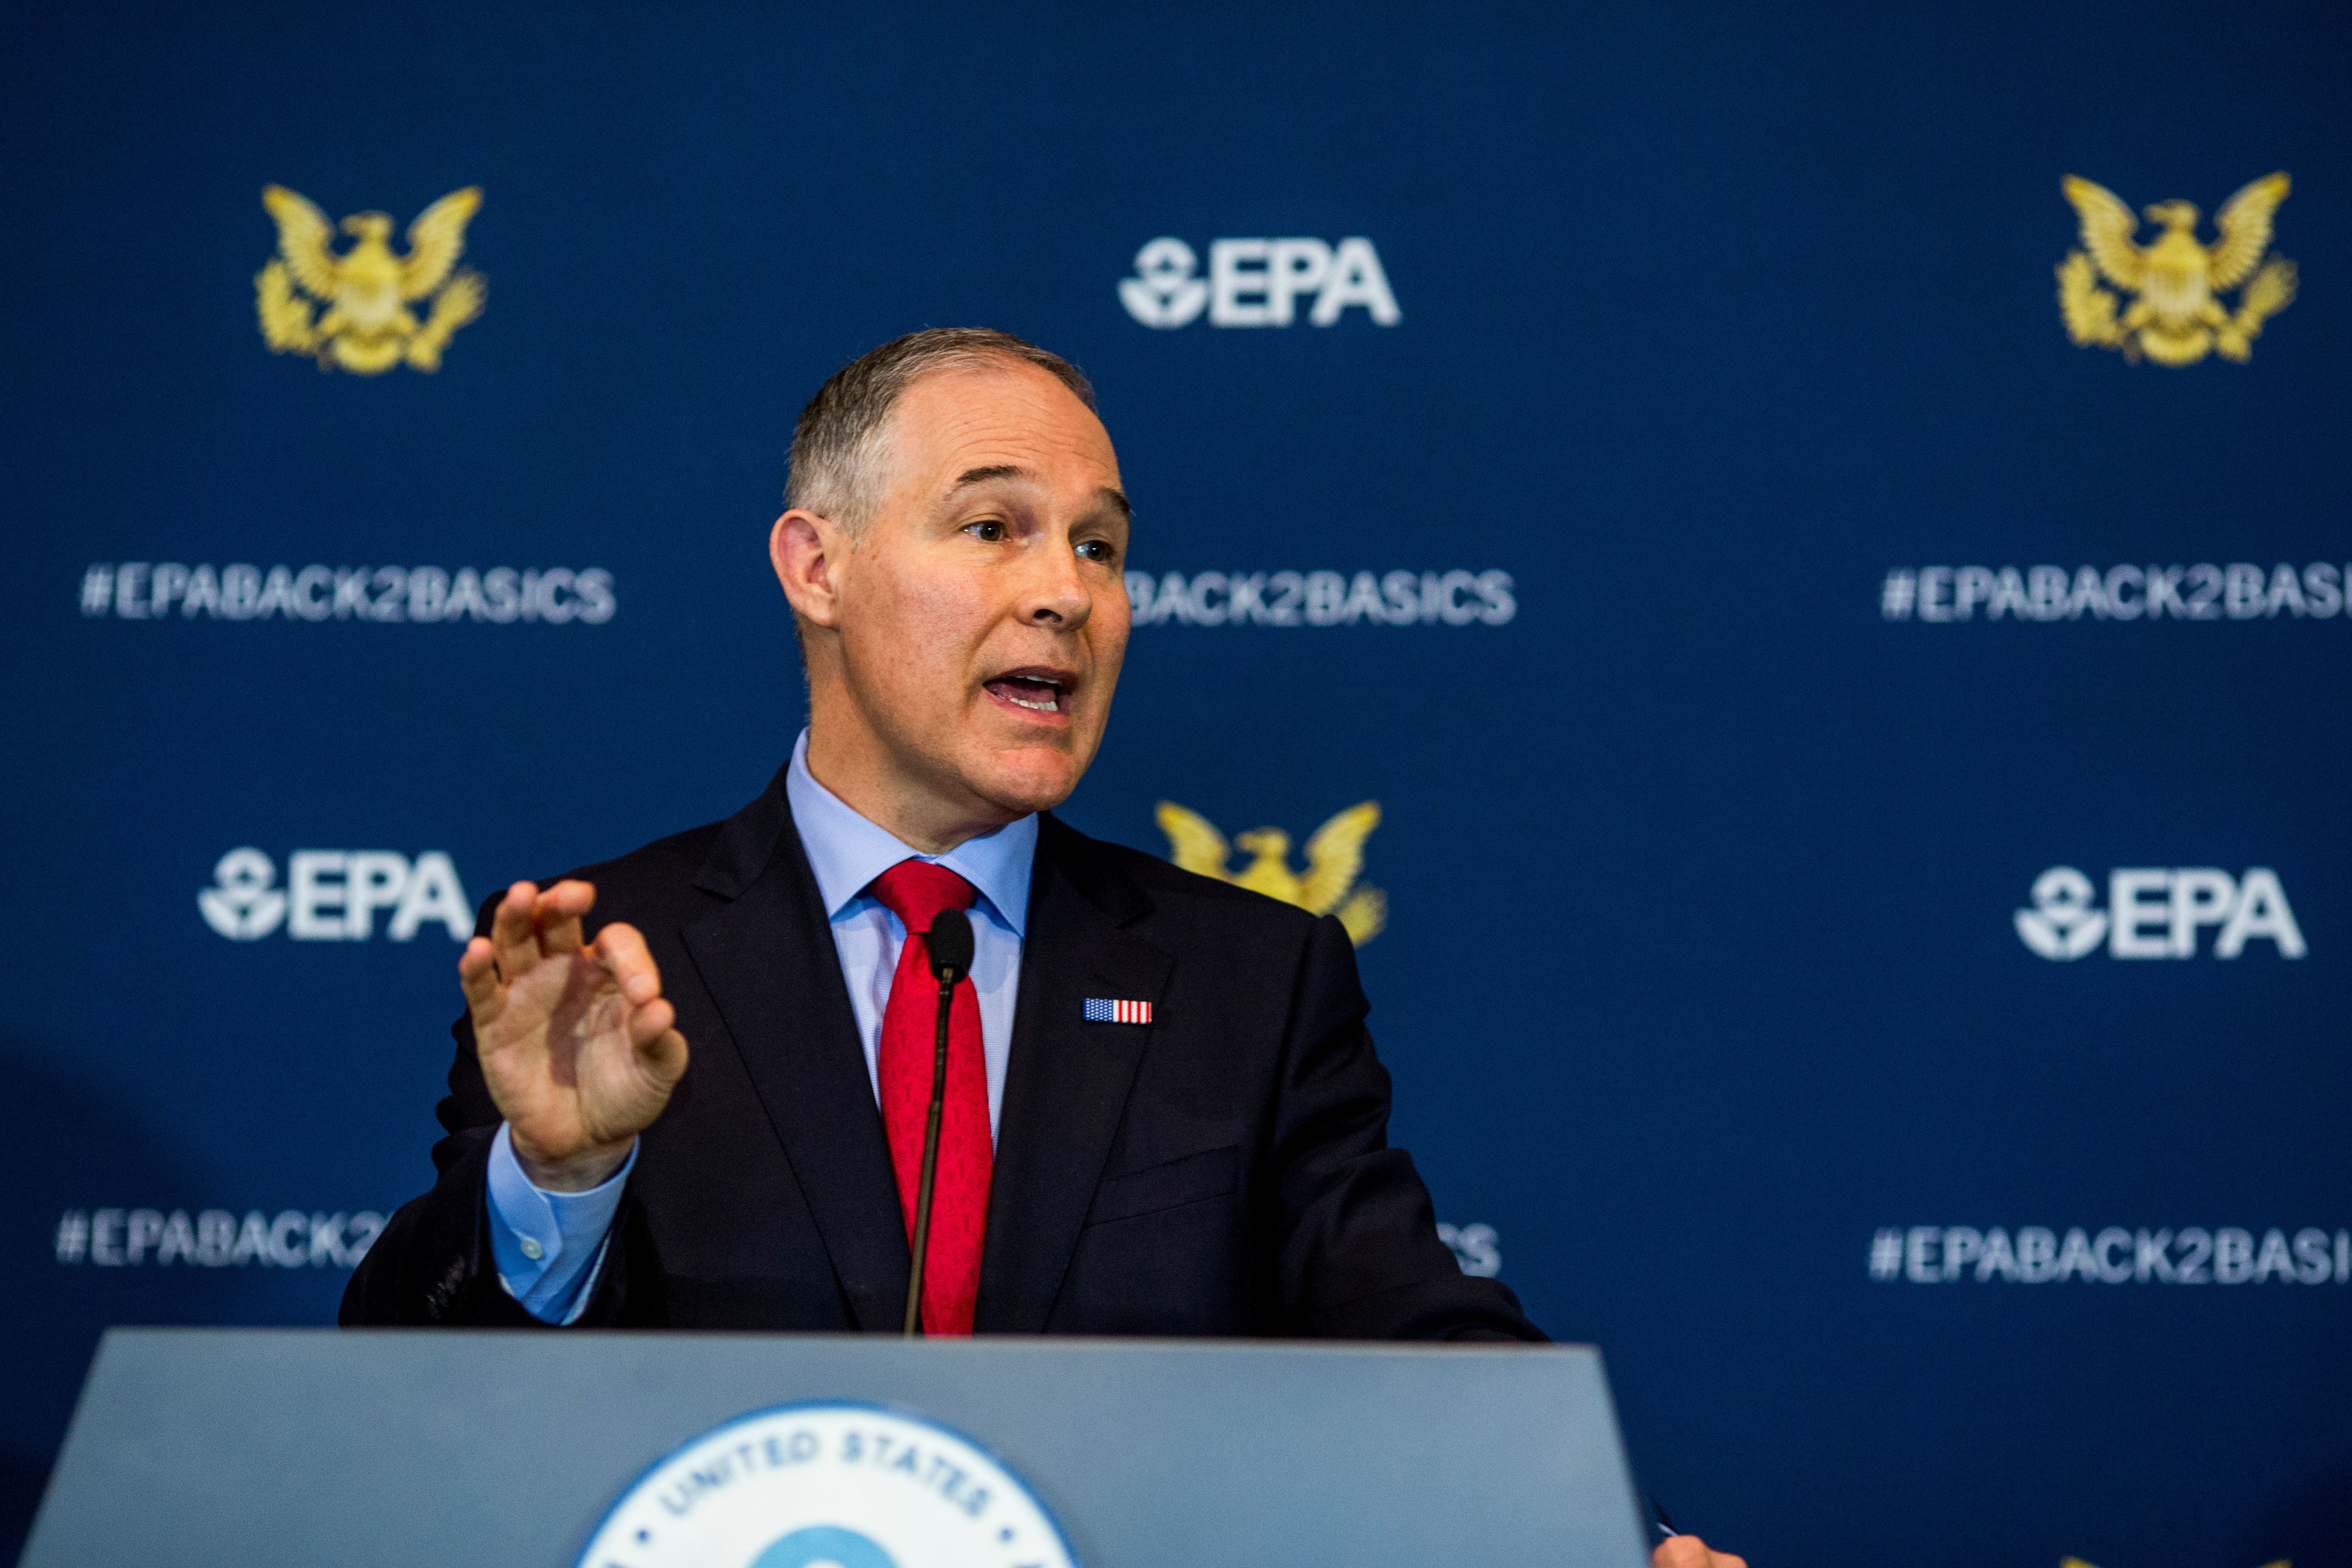 EPA chief Pruitt's $43000 soundproof booth violated law -US GAO